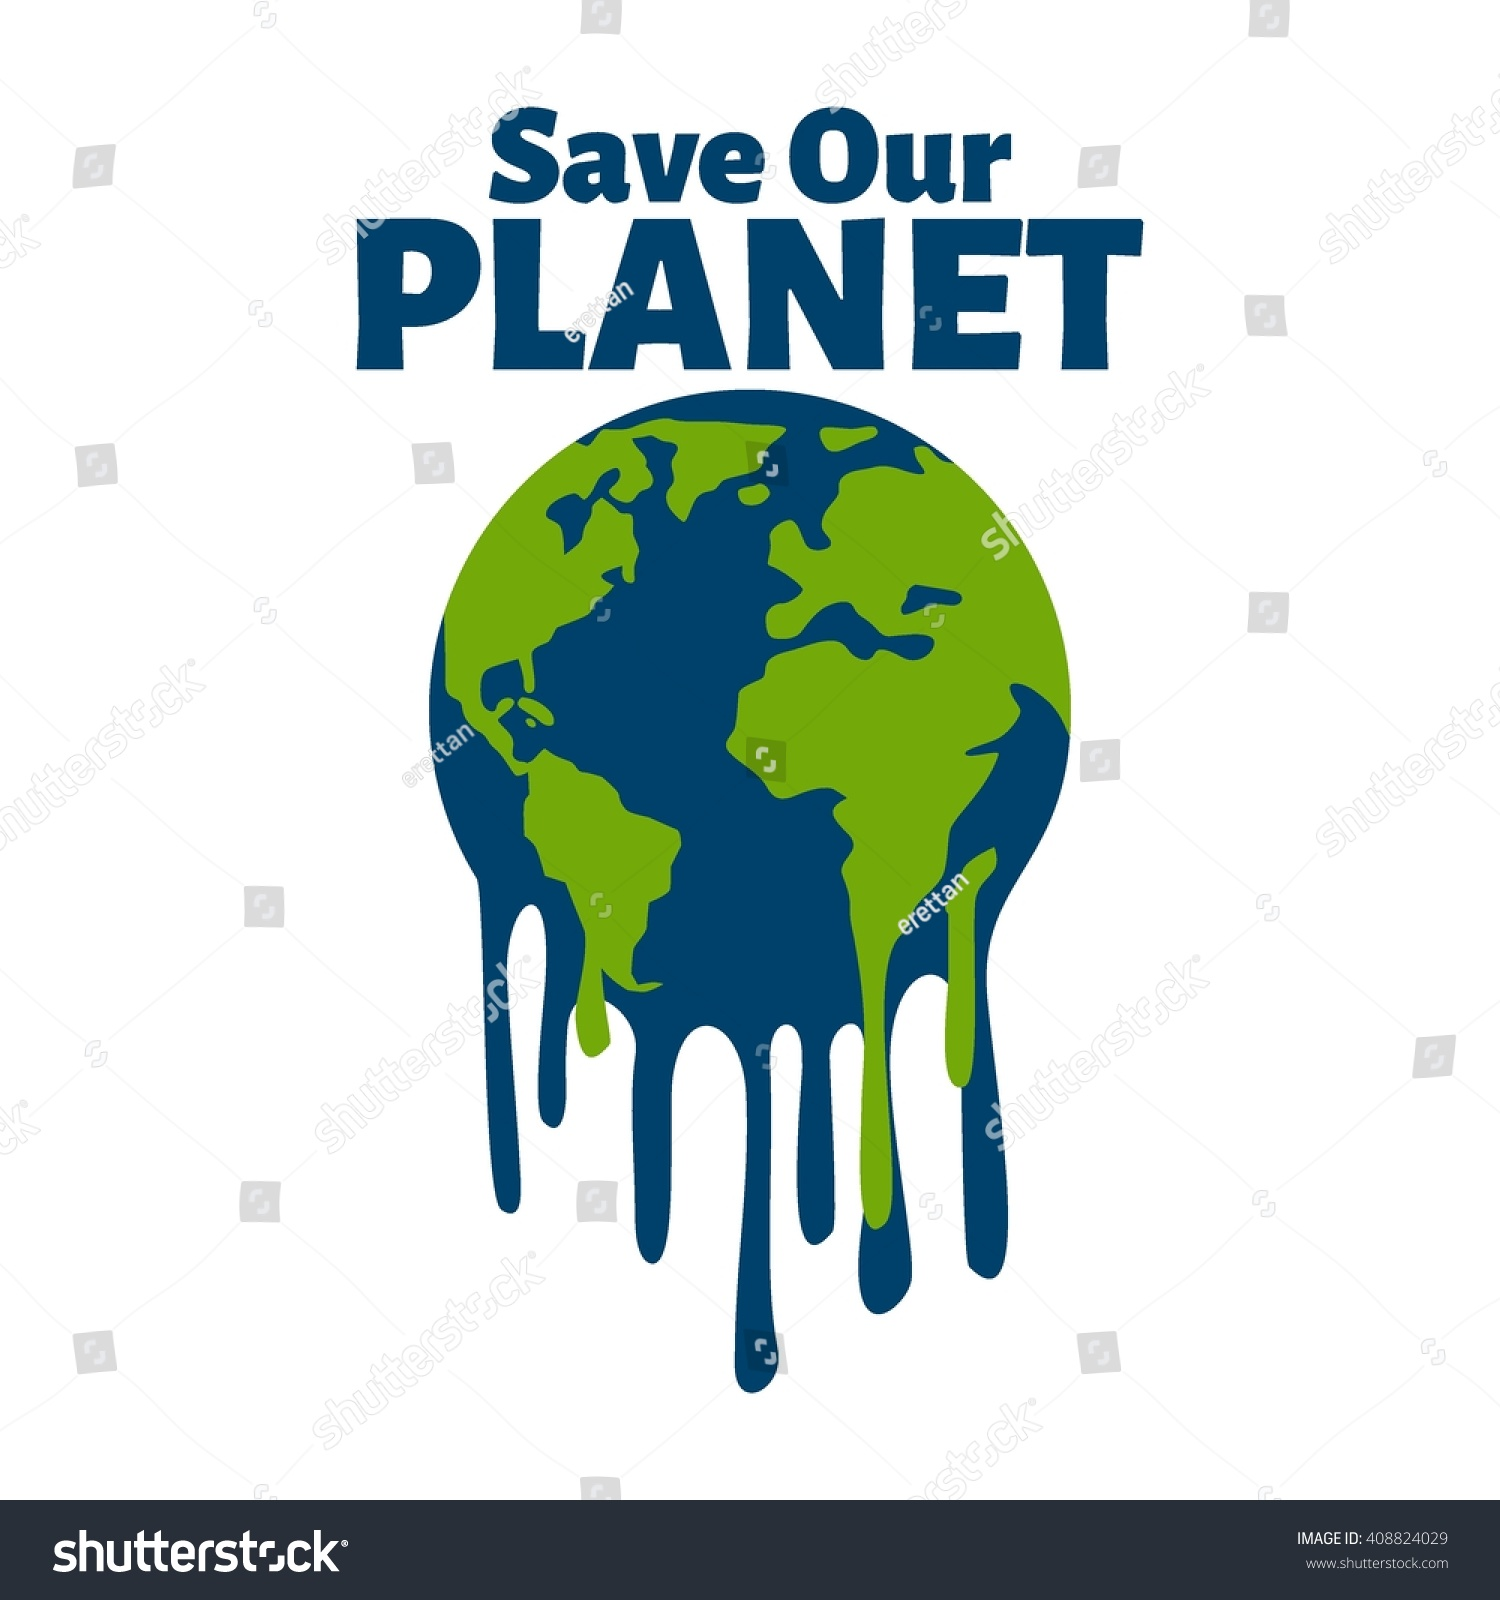 Poster design on save earth - Earth Day Poster Template